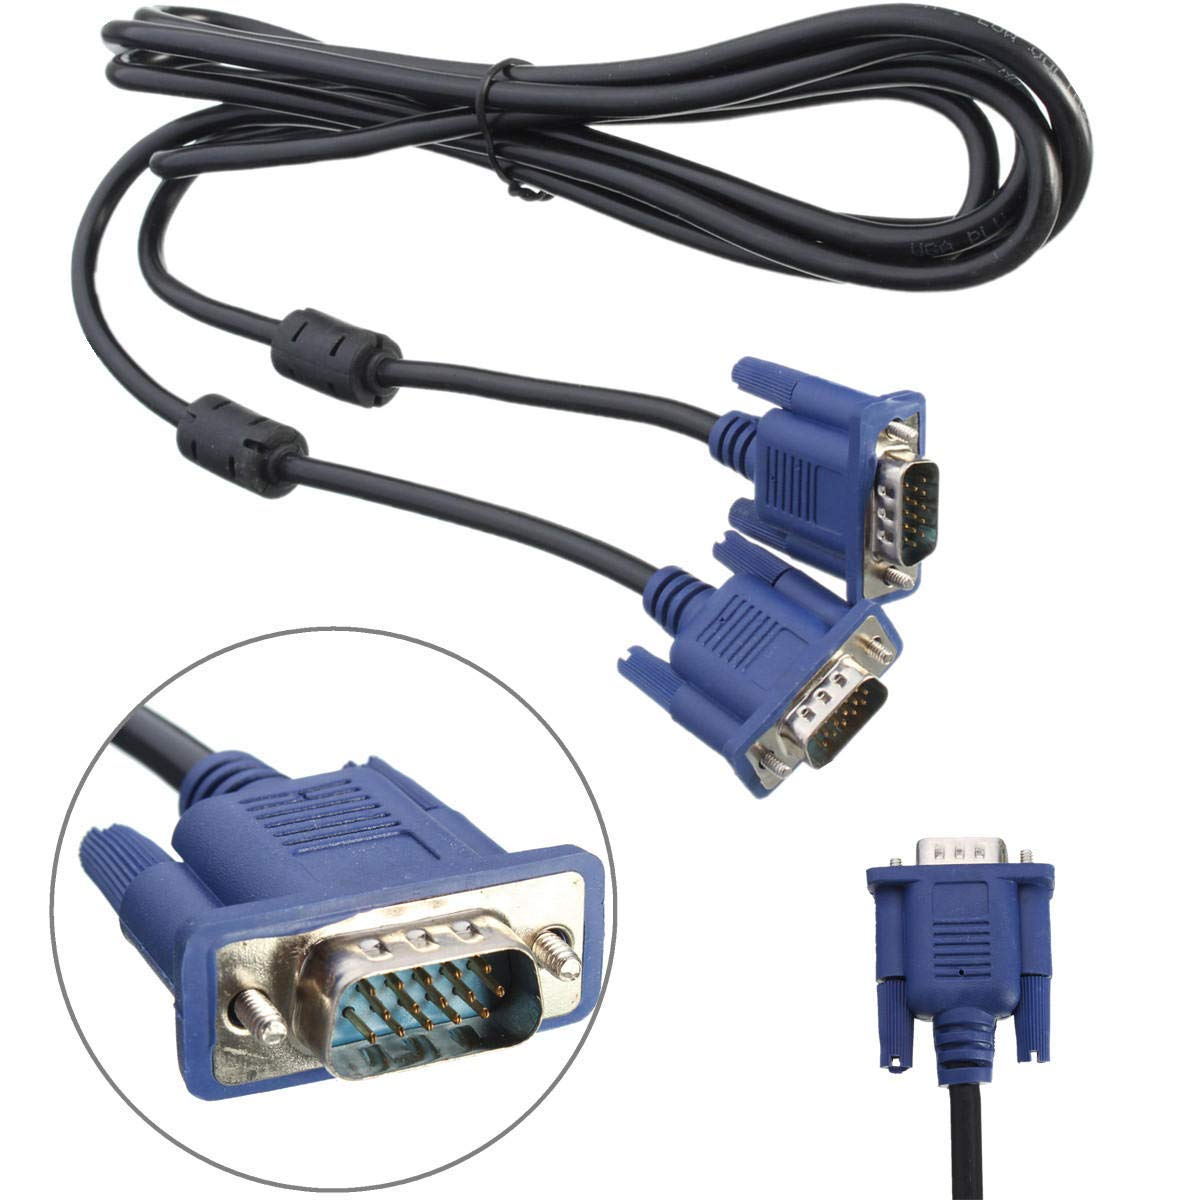 3 Feet Connects HDTV/'s /& Graphics Cards Shielded Copper VGA Video Cable KabelDirekt SVGA Top Series VGA Cable Male to Male Computer Monitor Cables